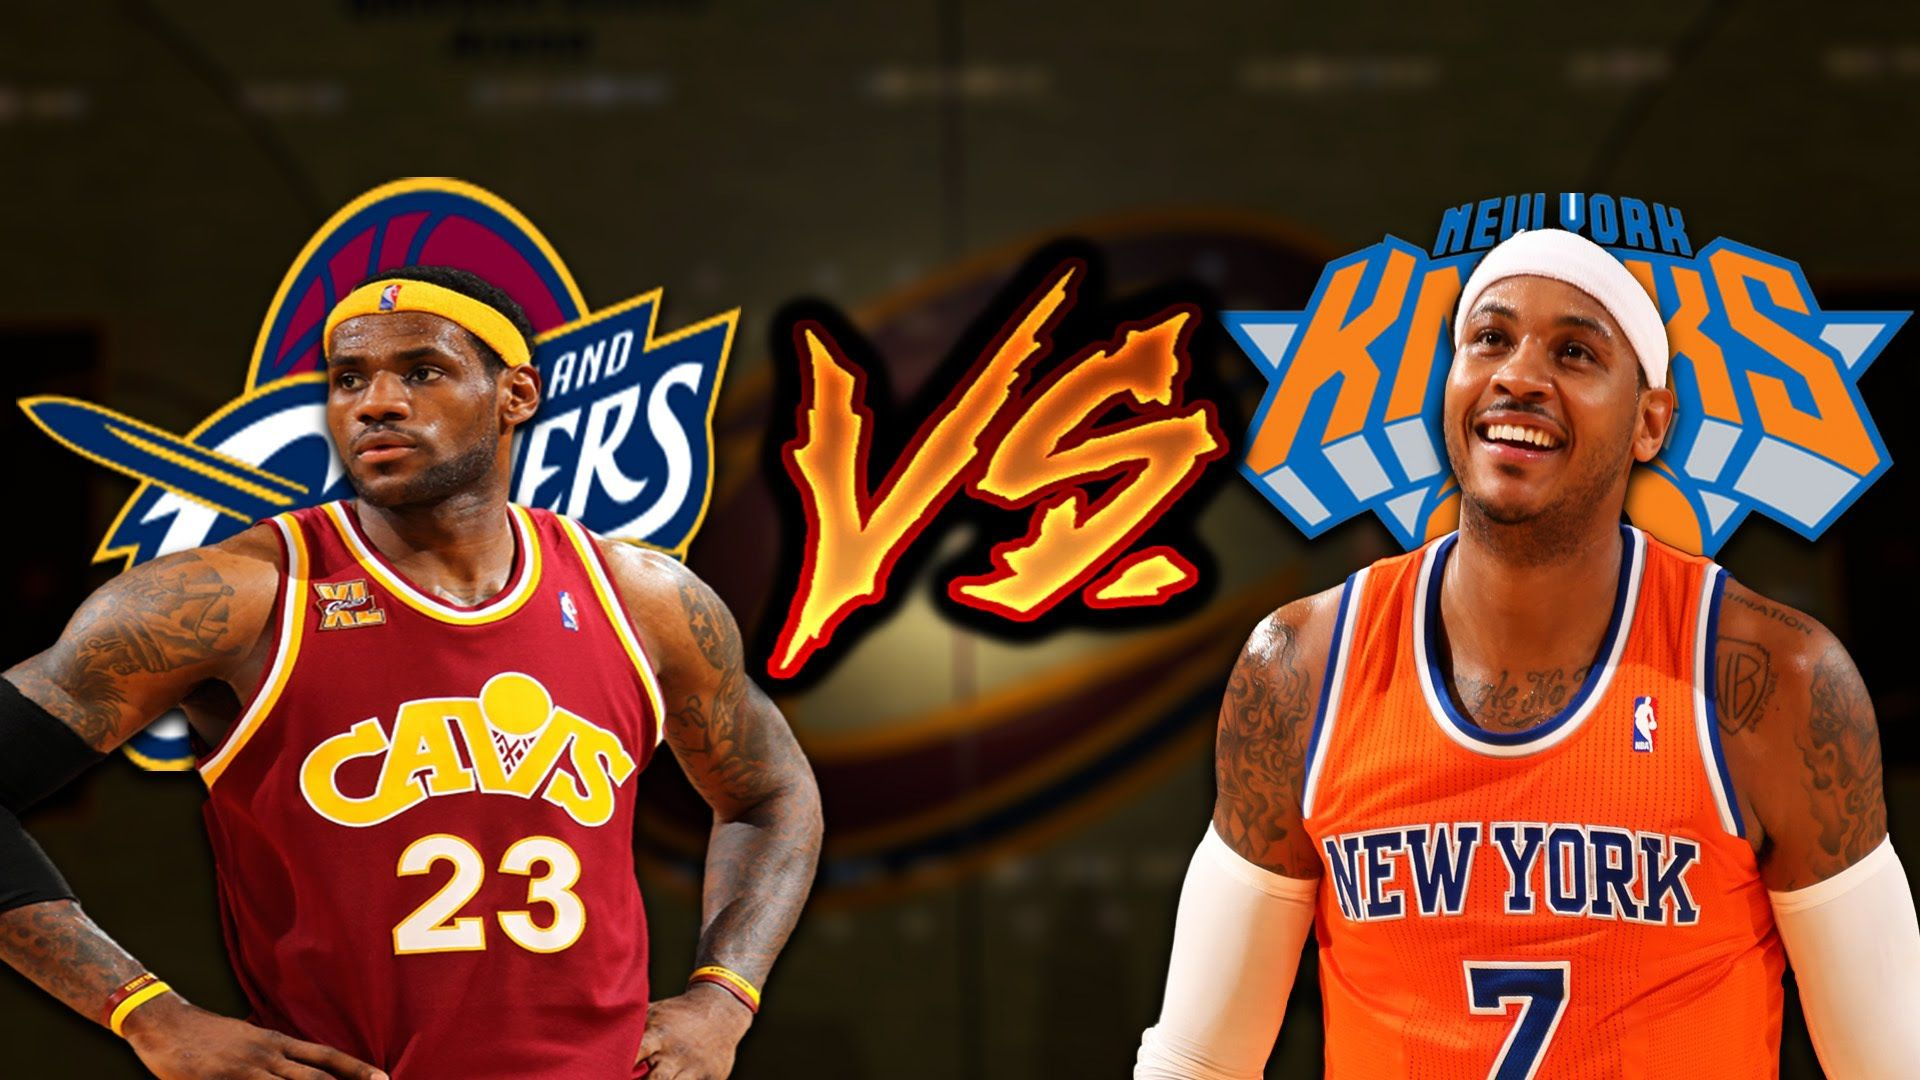 New York Knicks Vs Cleveland Cavaliers Live Stream Links New York Knicks Nba Matches Cavaliers Nba